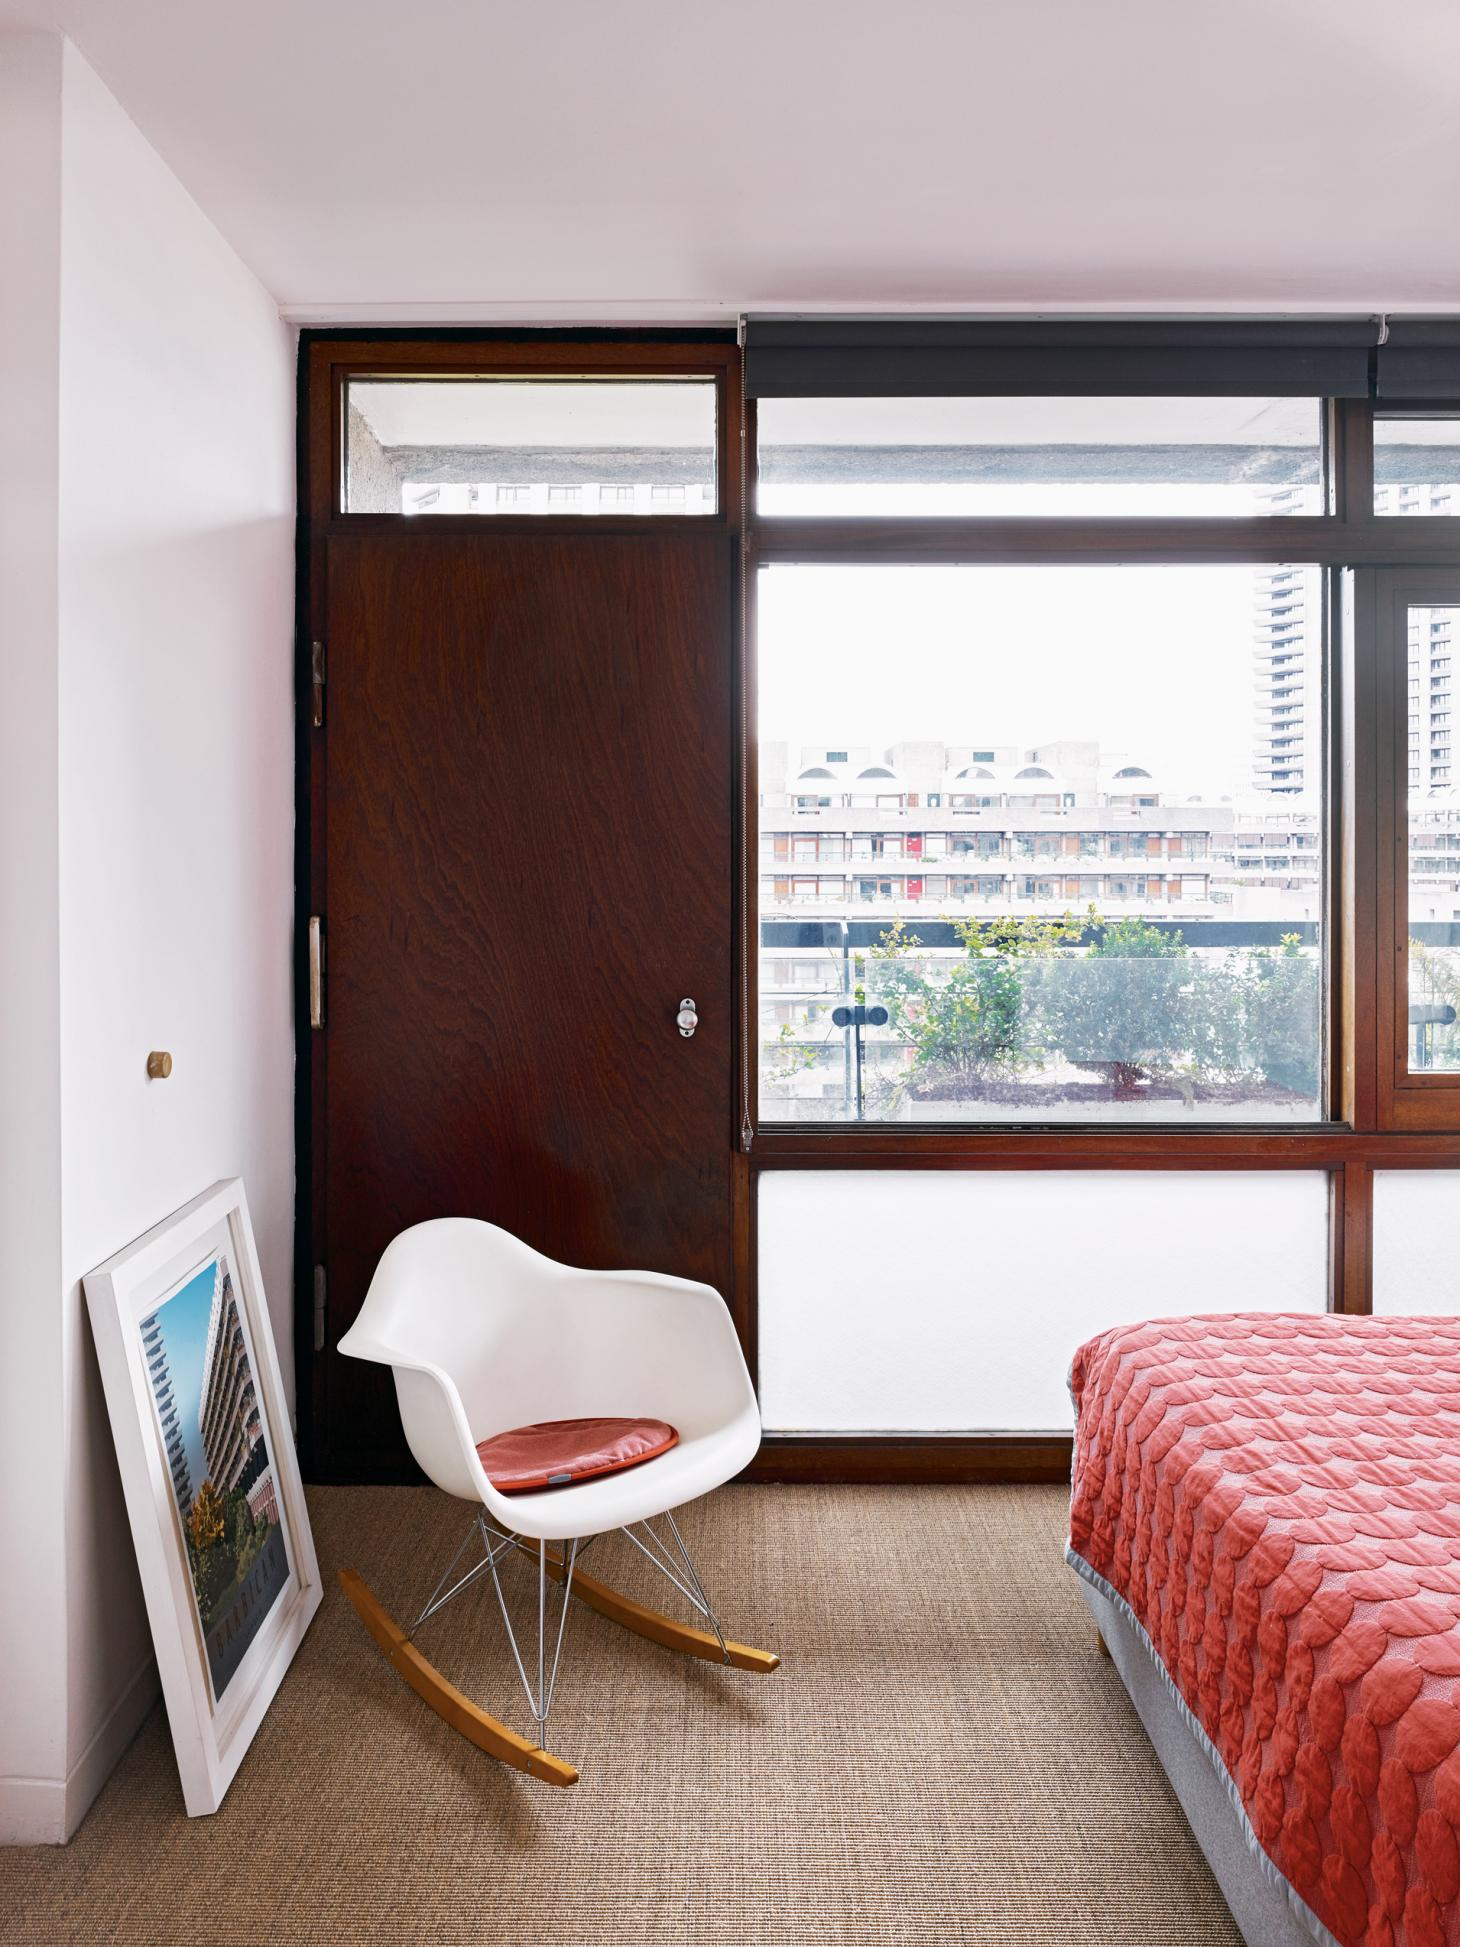 Bedroom interior at the Barbican Estate